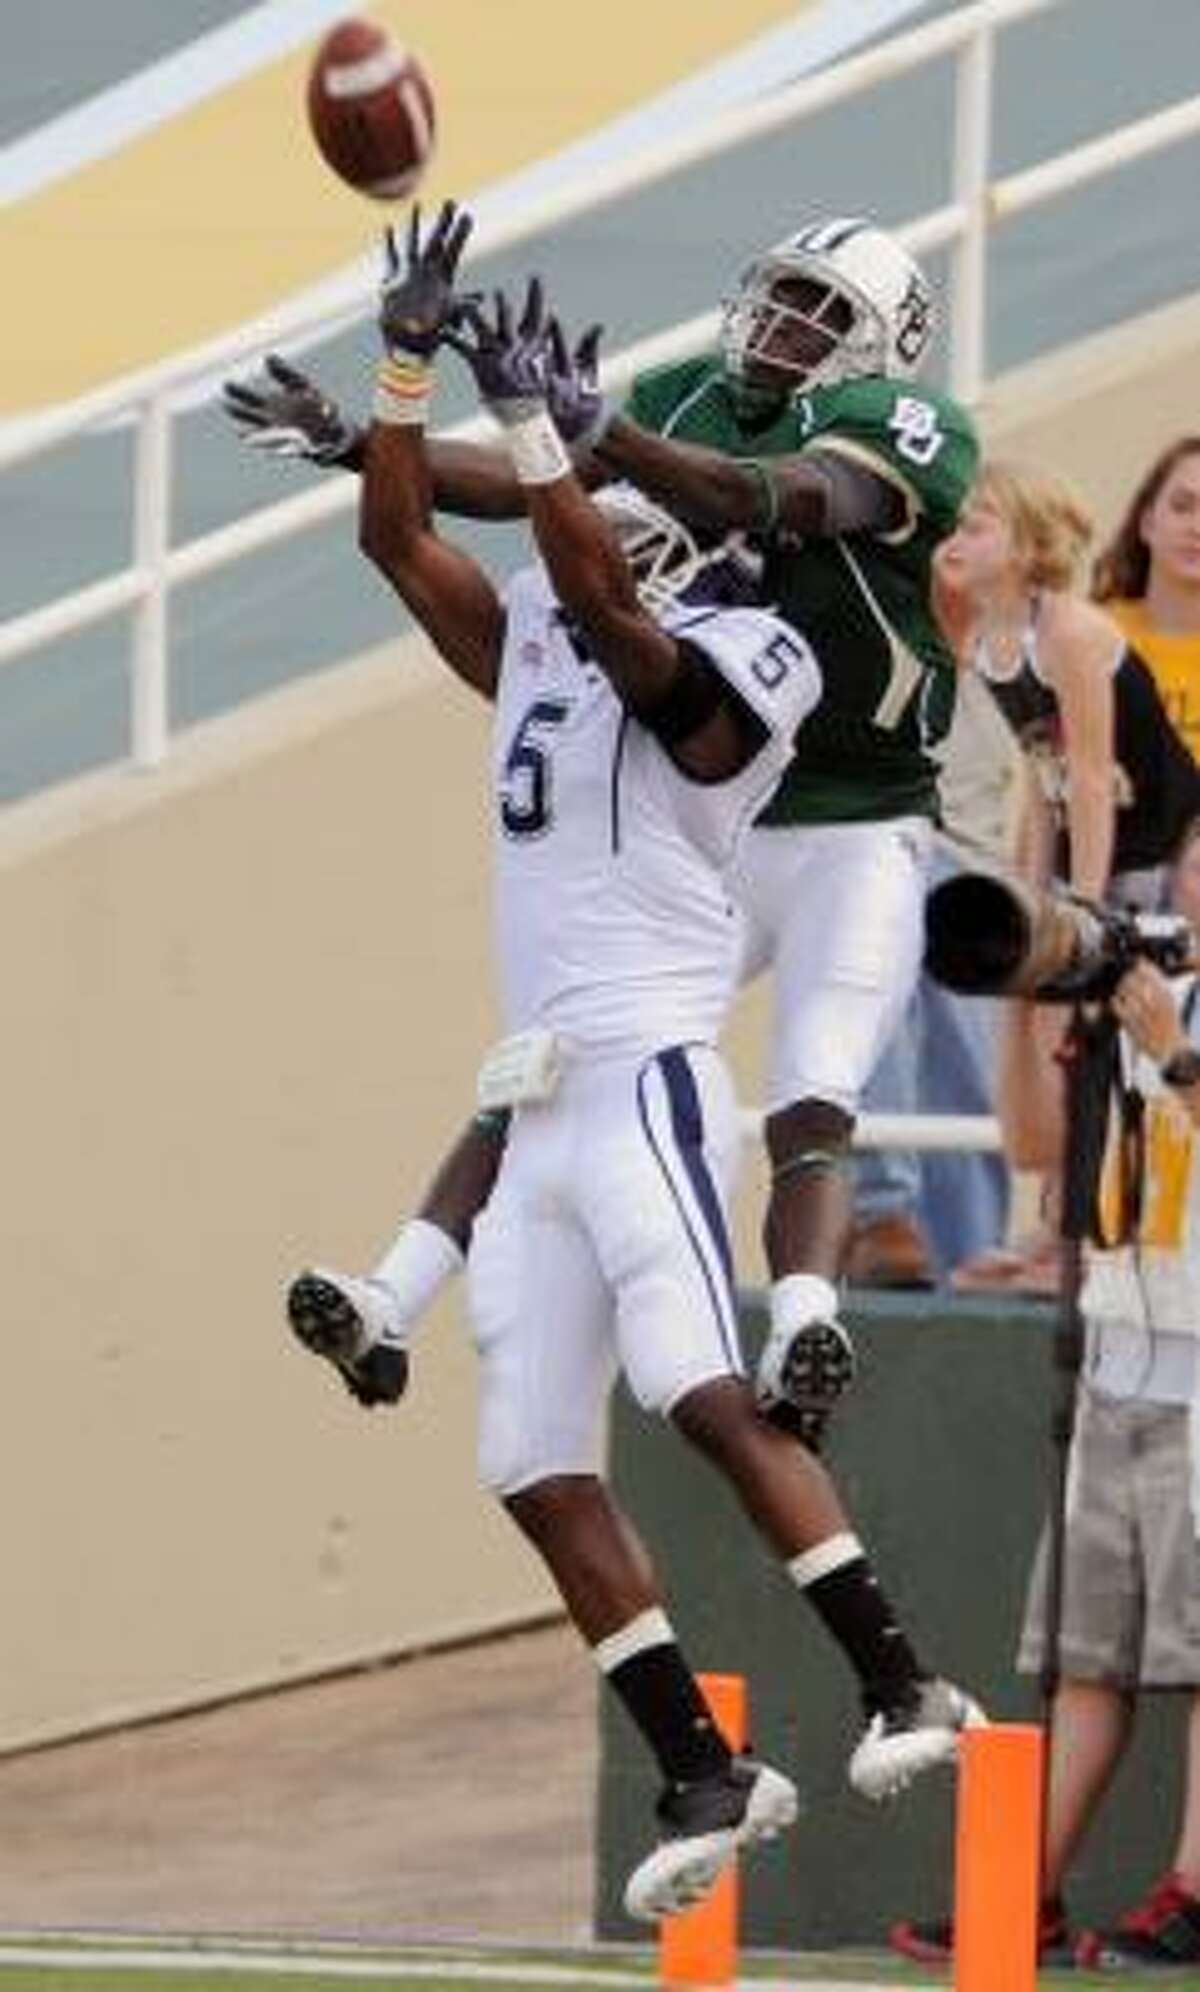 Connecticut's Blidi Wreh-Wilson breaks up a pass to Baylor's Kendall Wright during the third quarter.